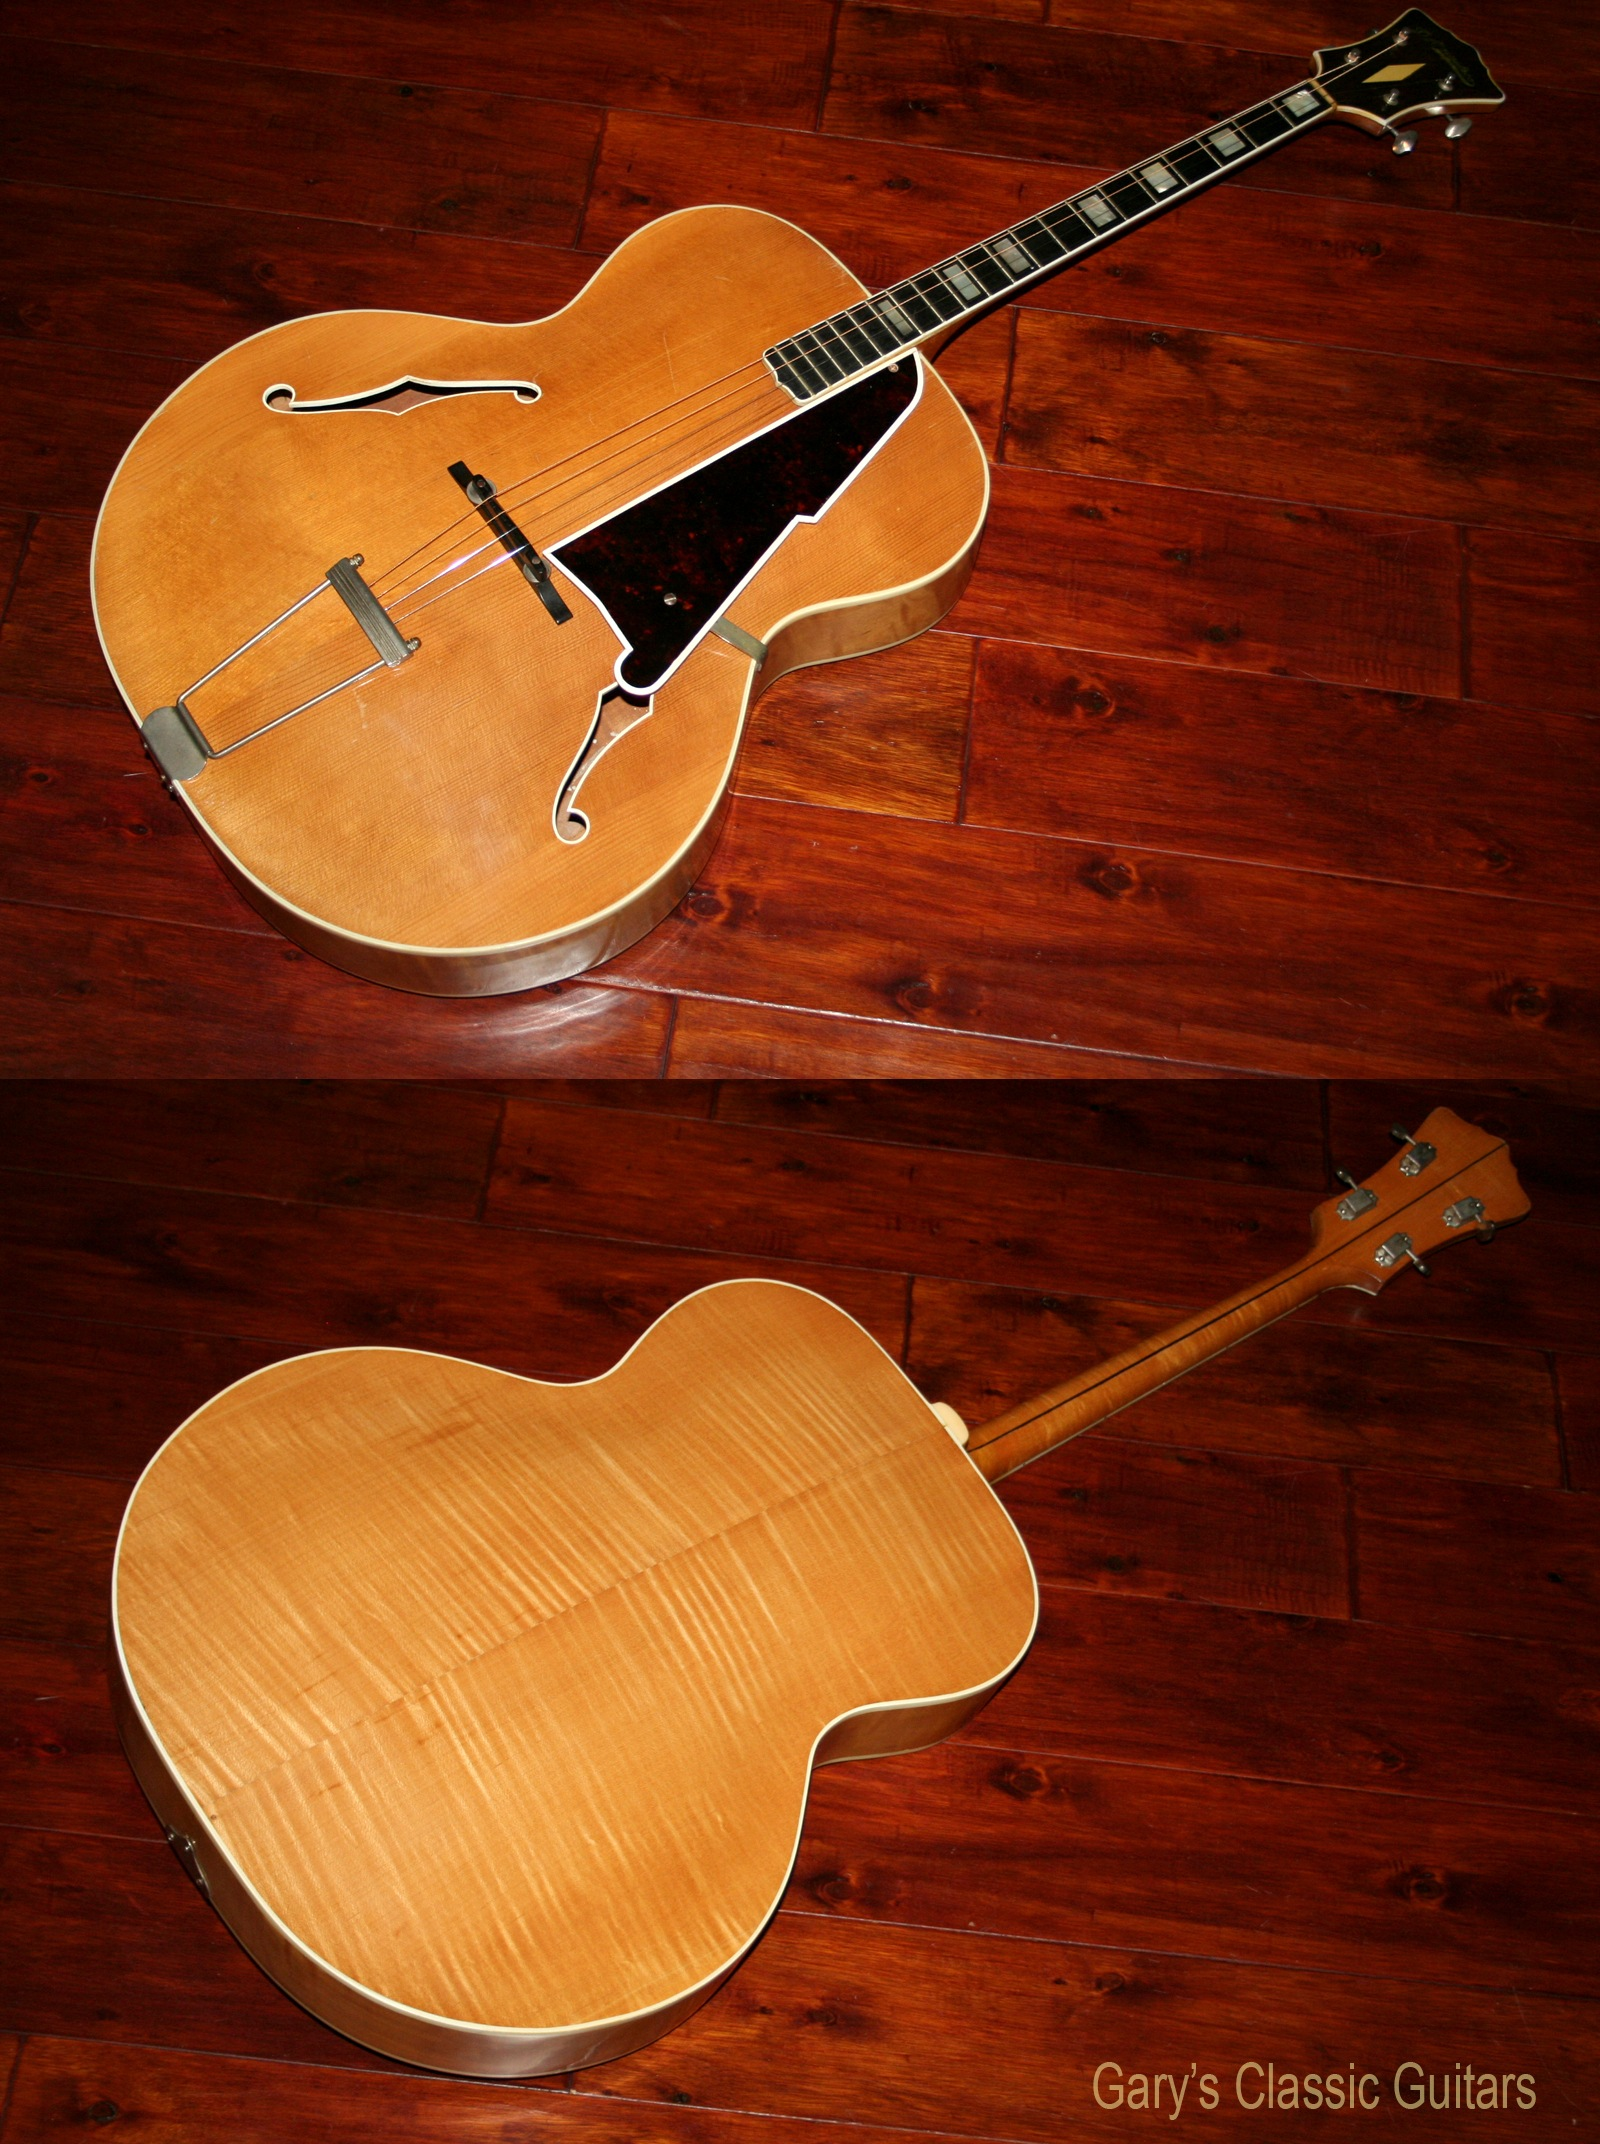 1947 D'Angelico Tenor archtop guitar | Garys Classic Guitars